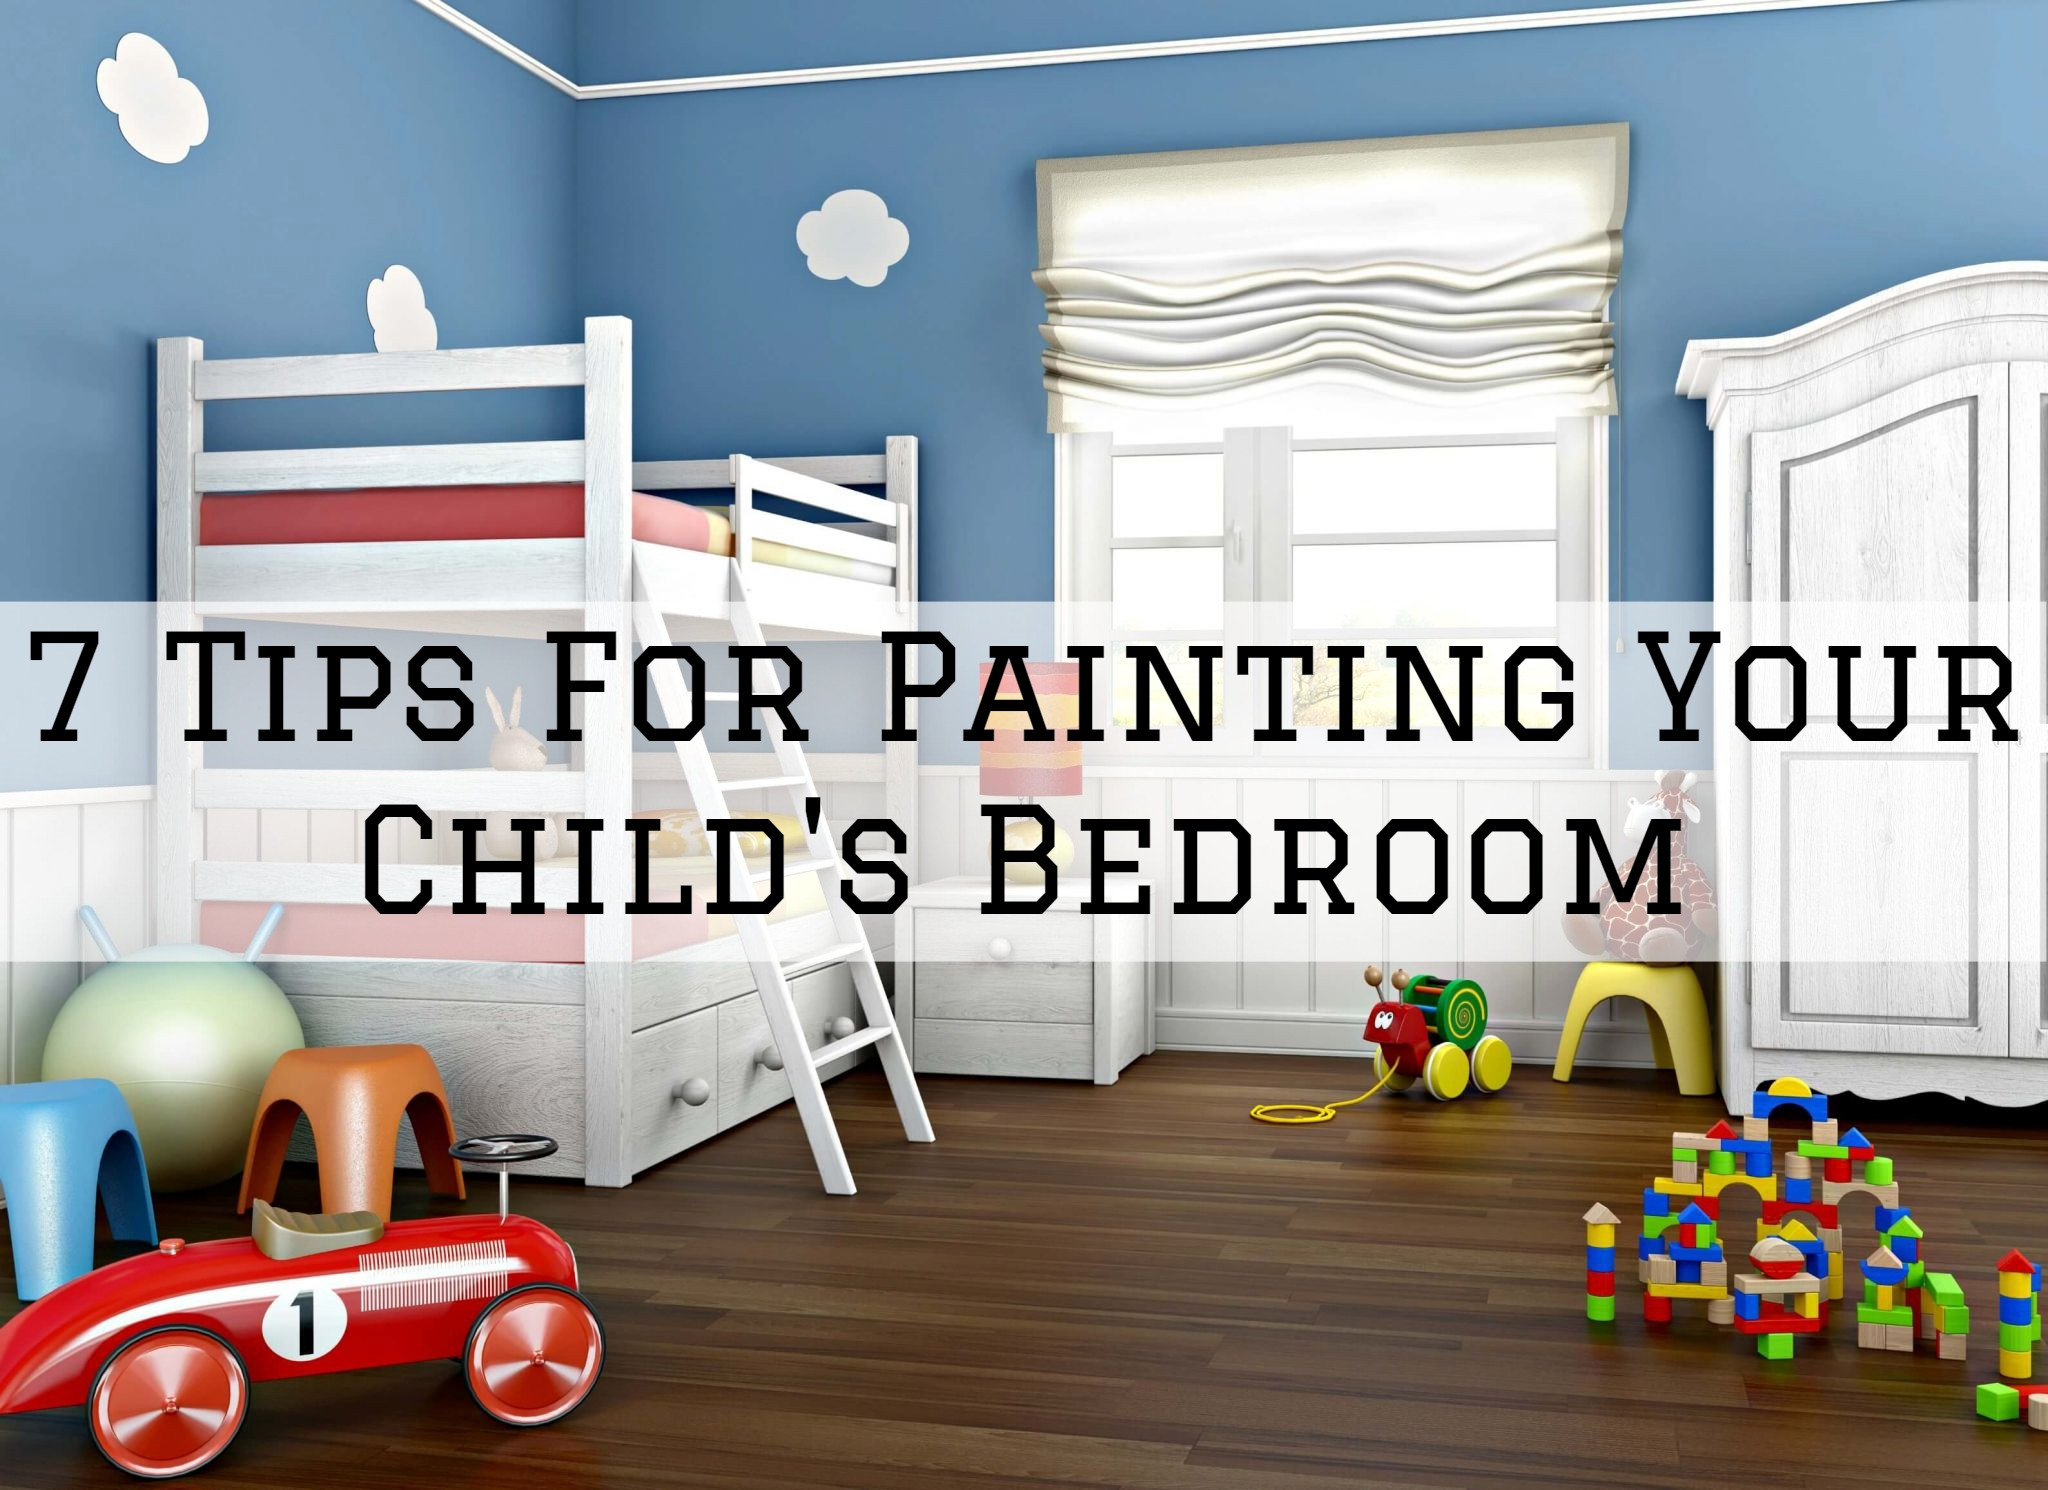 21-07-2021 Steves Quality Painting And Washing Green Lake WI tips for painting your child's bedroom